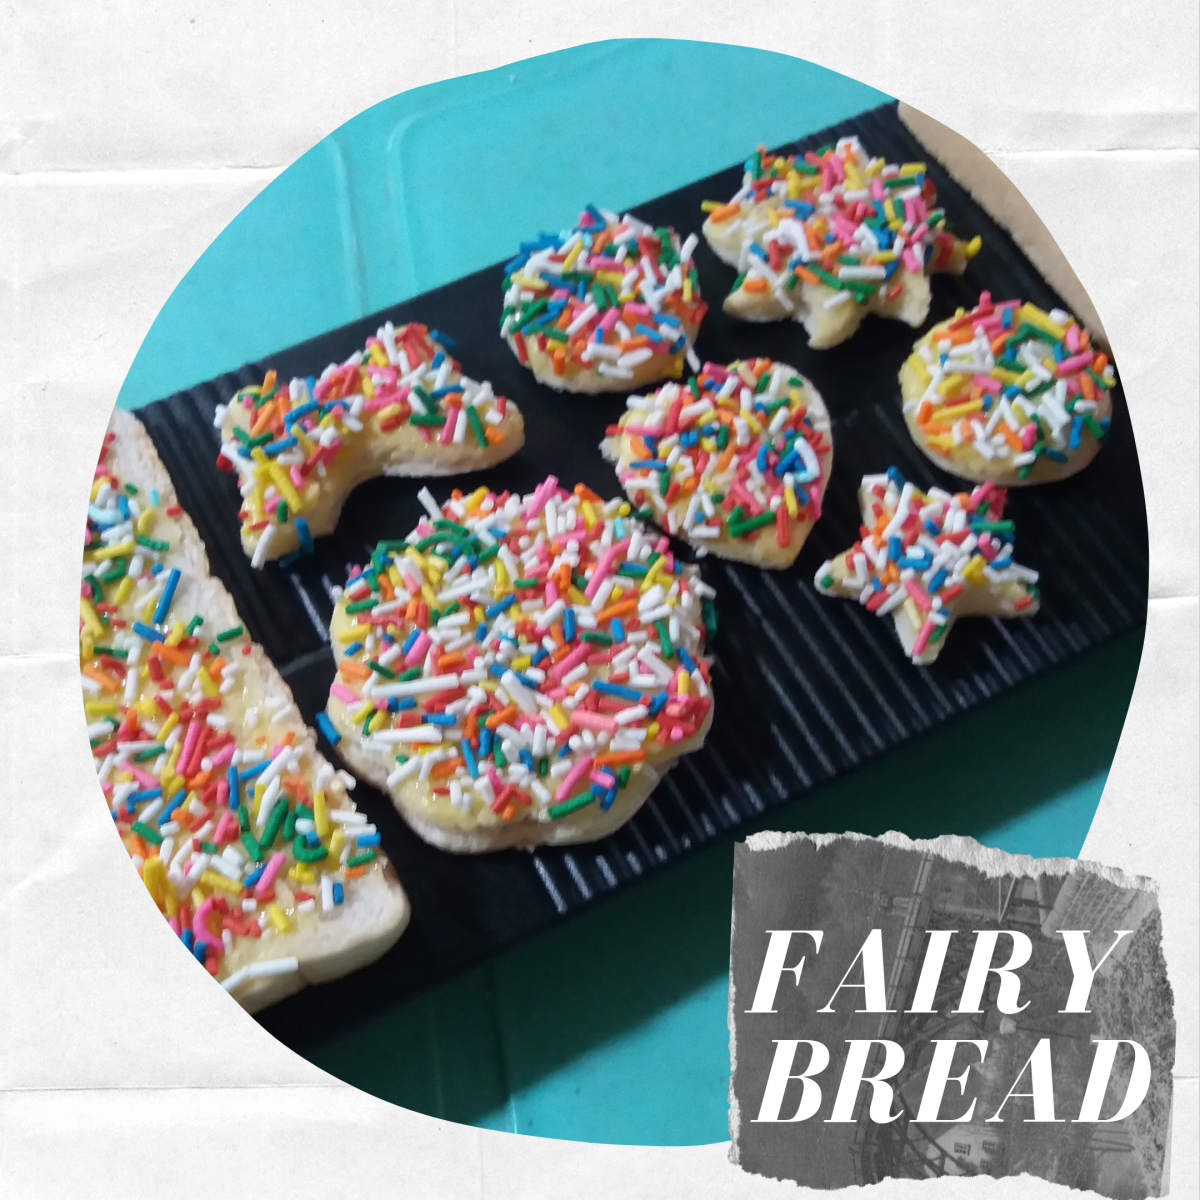 Fairy bread is a popular kids' treat